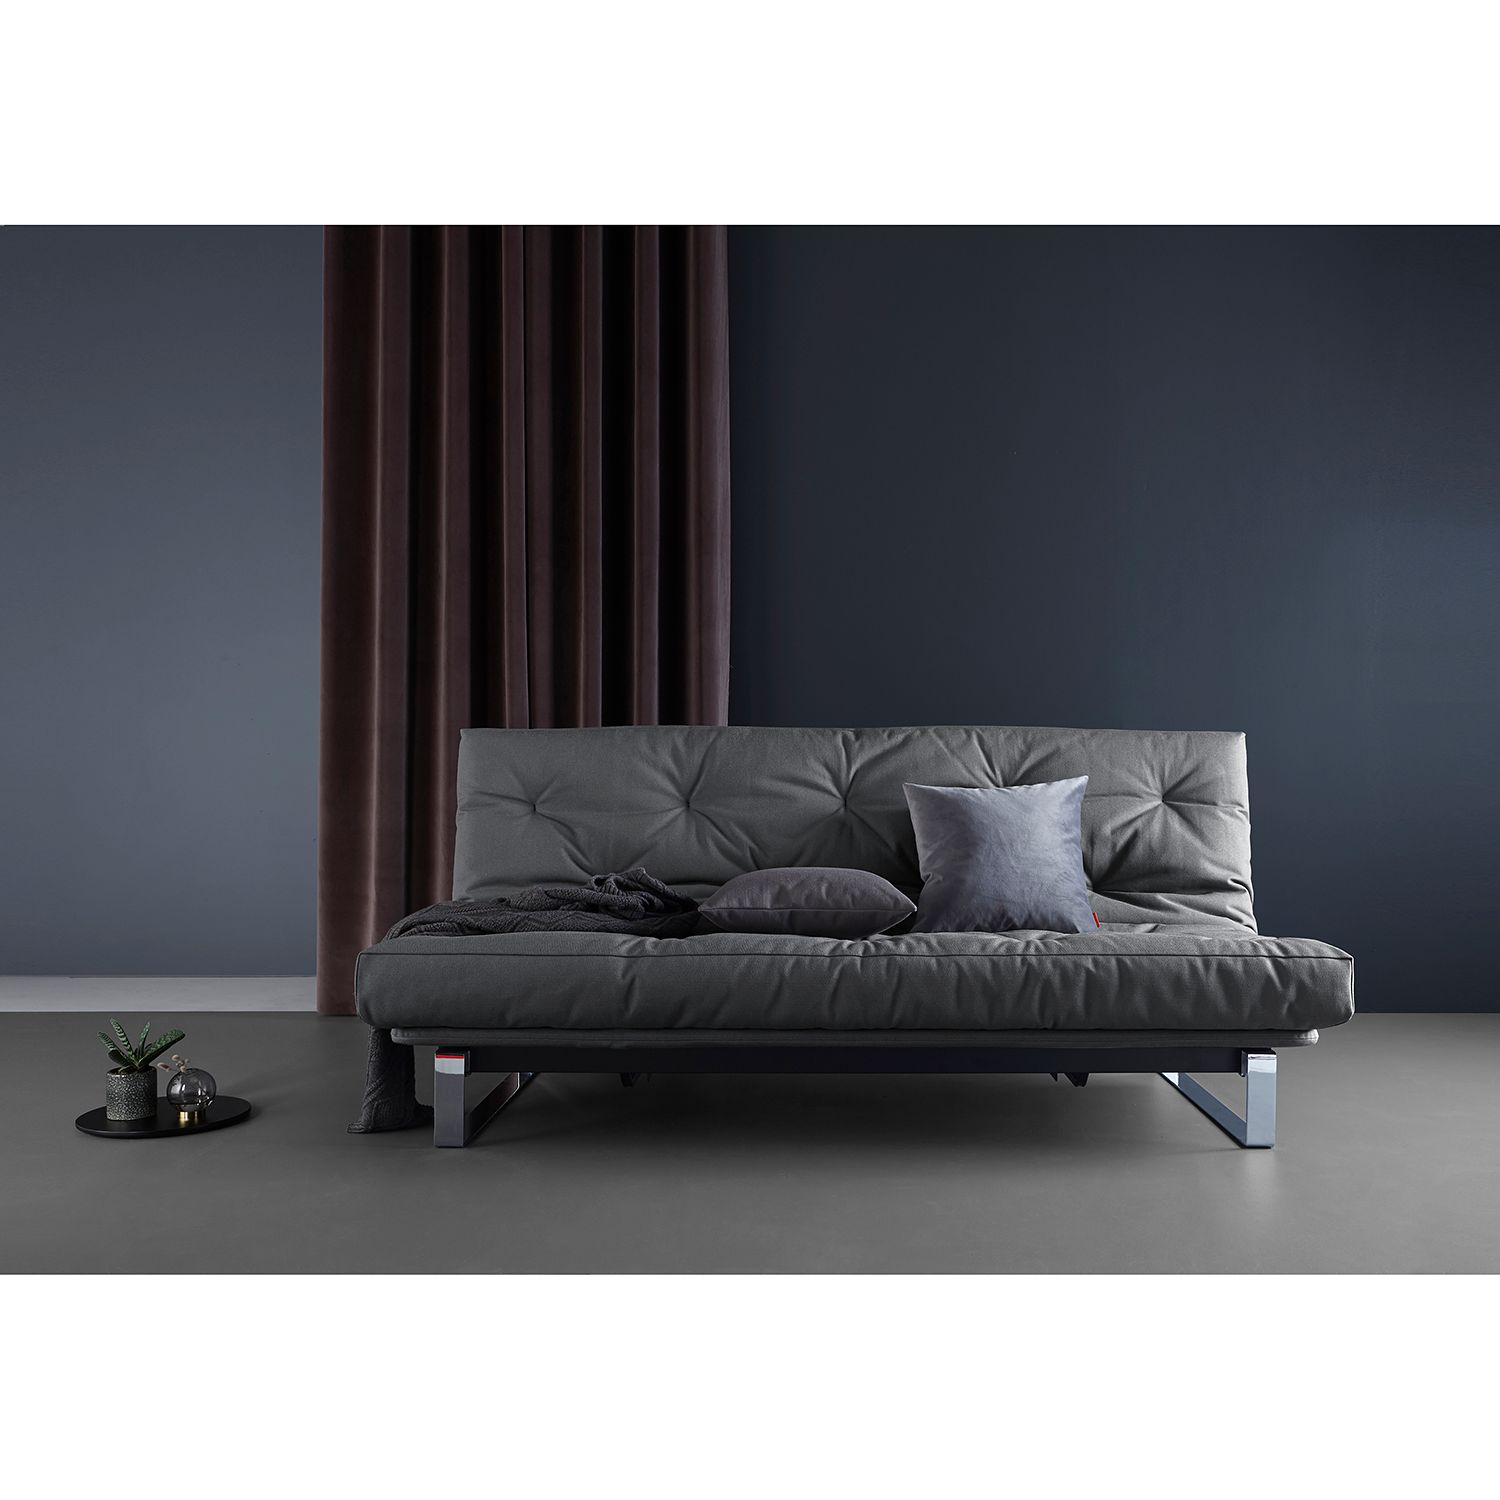 Bettsofa Holzgestell Schlafsofa Minimum Ii Webstoff Products Sofa Bed Couch Und Sofa